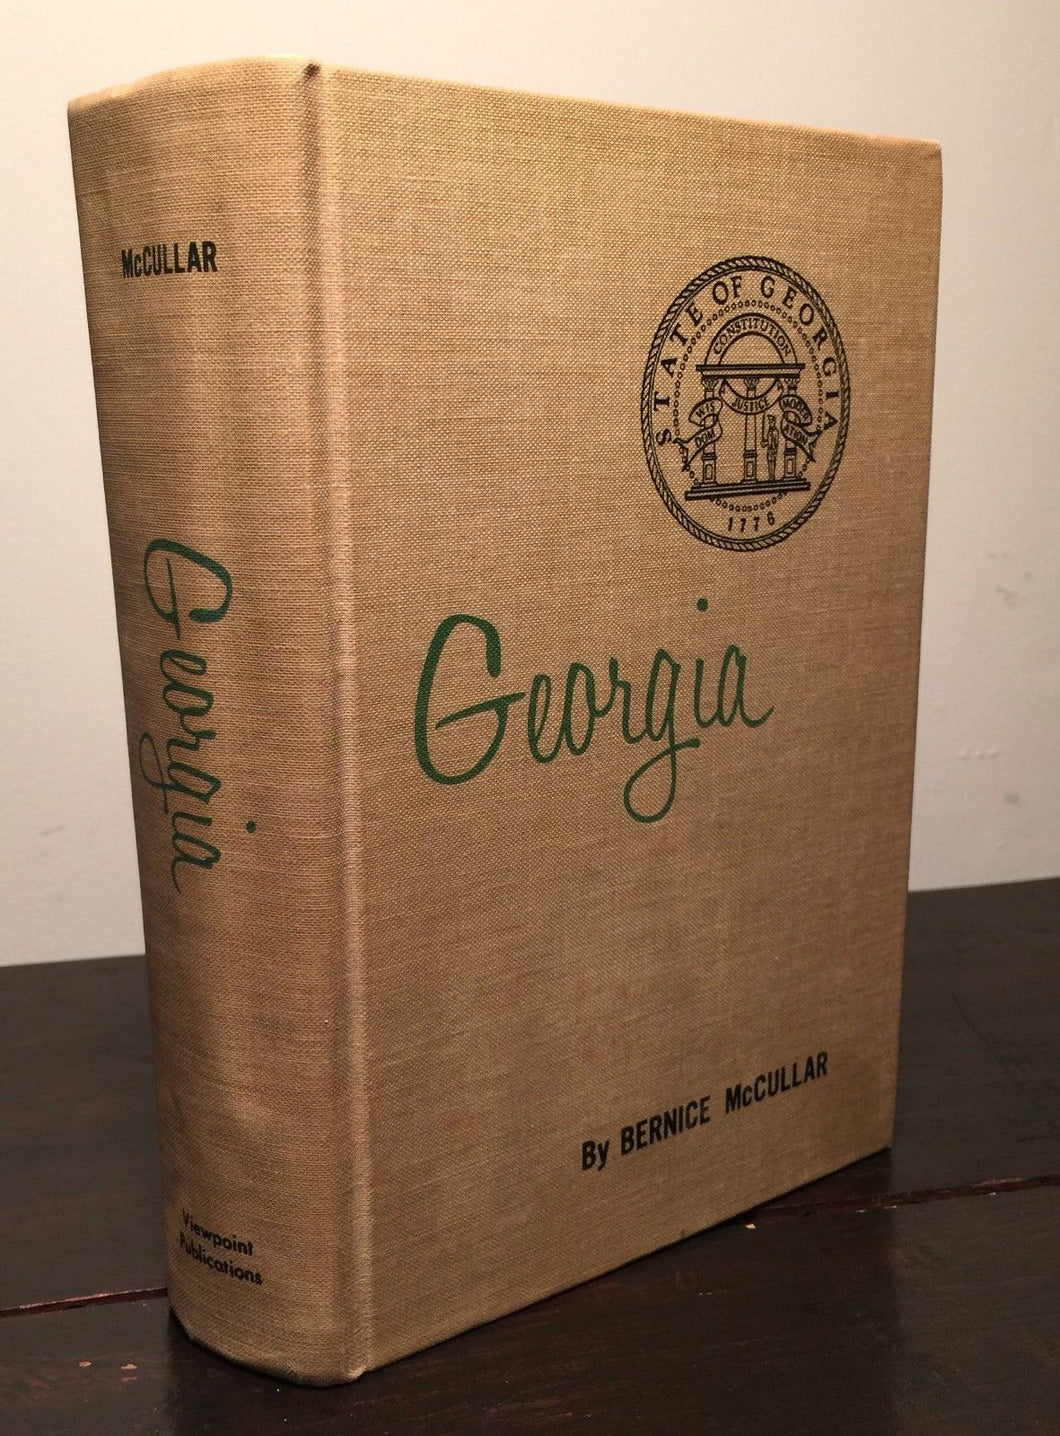 THIS IS YOUR GEORGIA Bernice McCullar 1st Ed. - Maps, Illus 1966 HC SIGNED, RARE